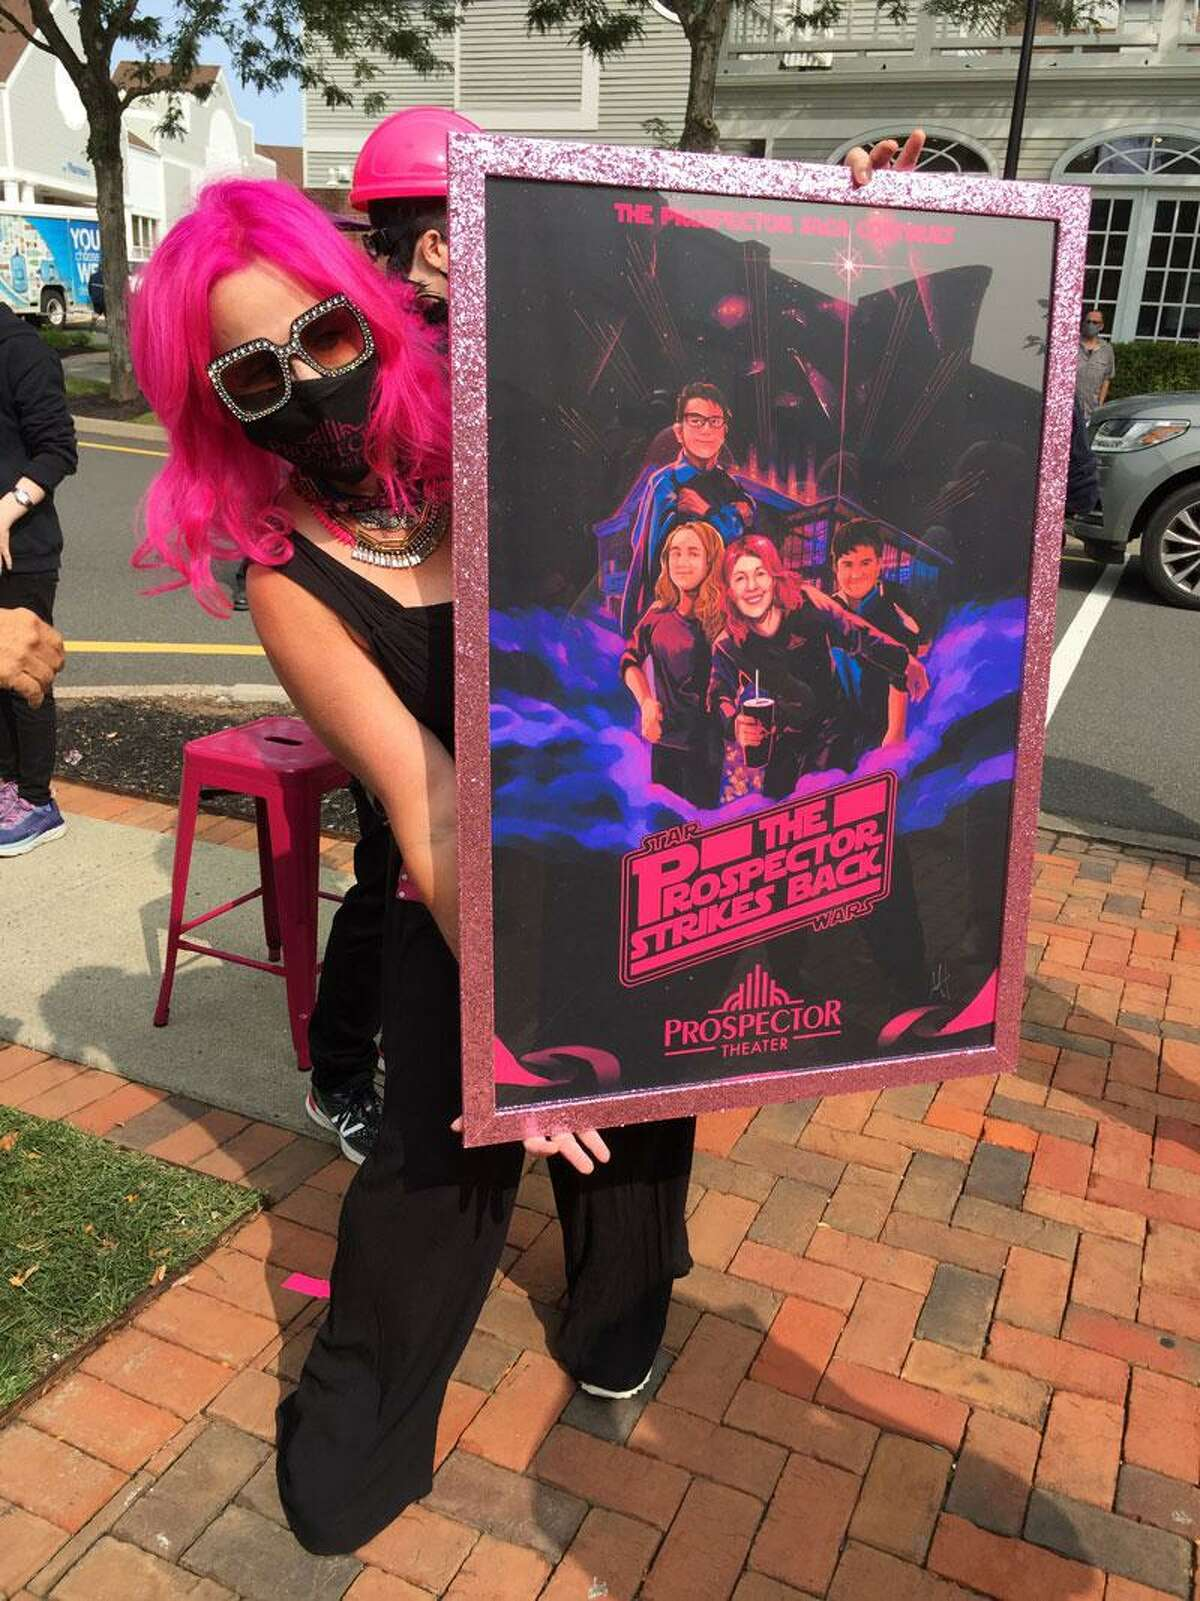 Prospector Theater founder Valerie Jensen with a special poster made in honor of the movie theater's second location in Wilton.